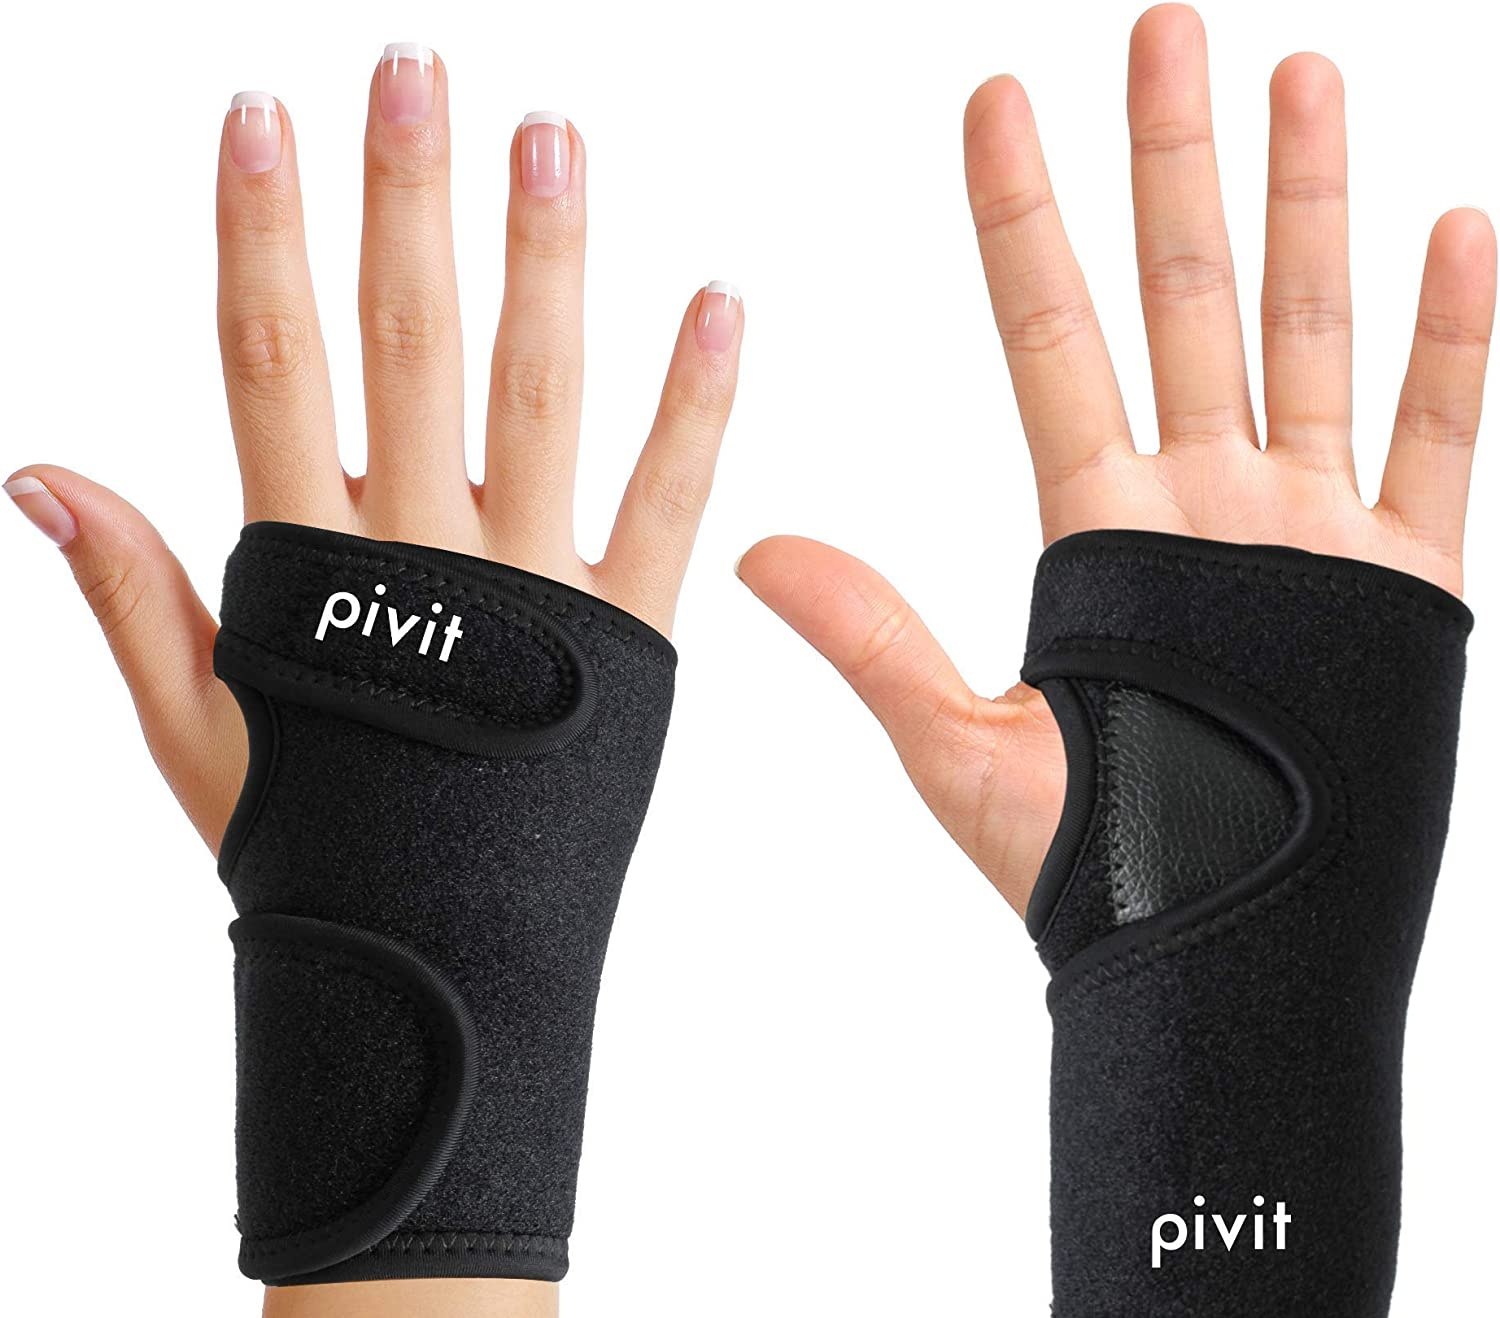 Pivit Antibacterial Carpal Tunnel Wrist Support Brace | Universal Hand Compression Wraps Fit Left or Right Hands | Duo Adjustable Straps & Removable Splint | Prevents Stains & Odor Causing Bacteria